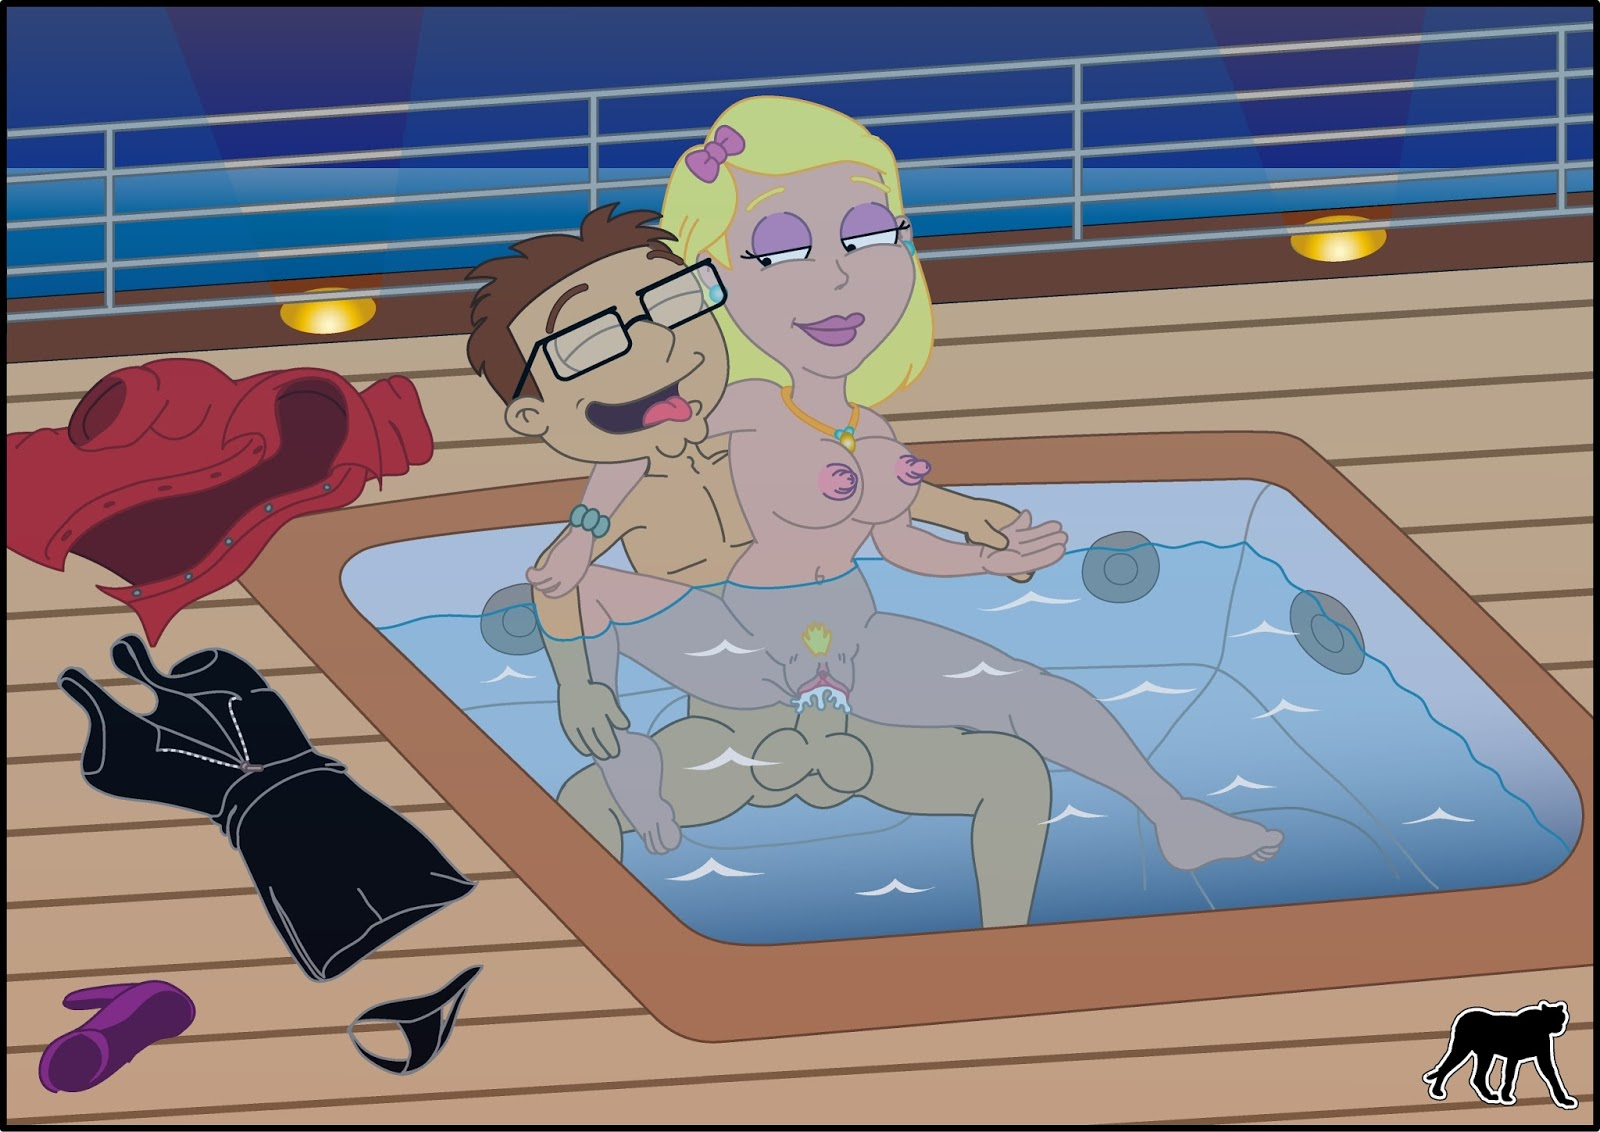 Nude pics of american dad